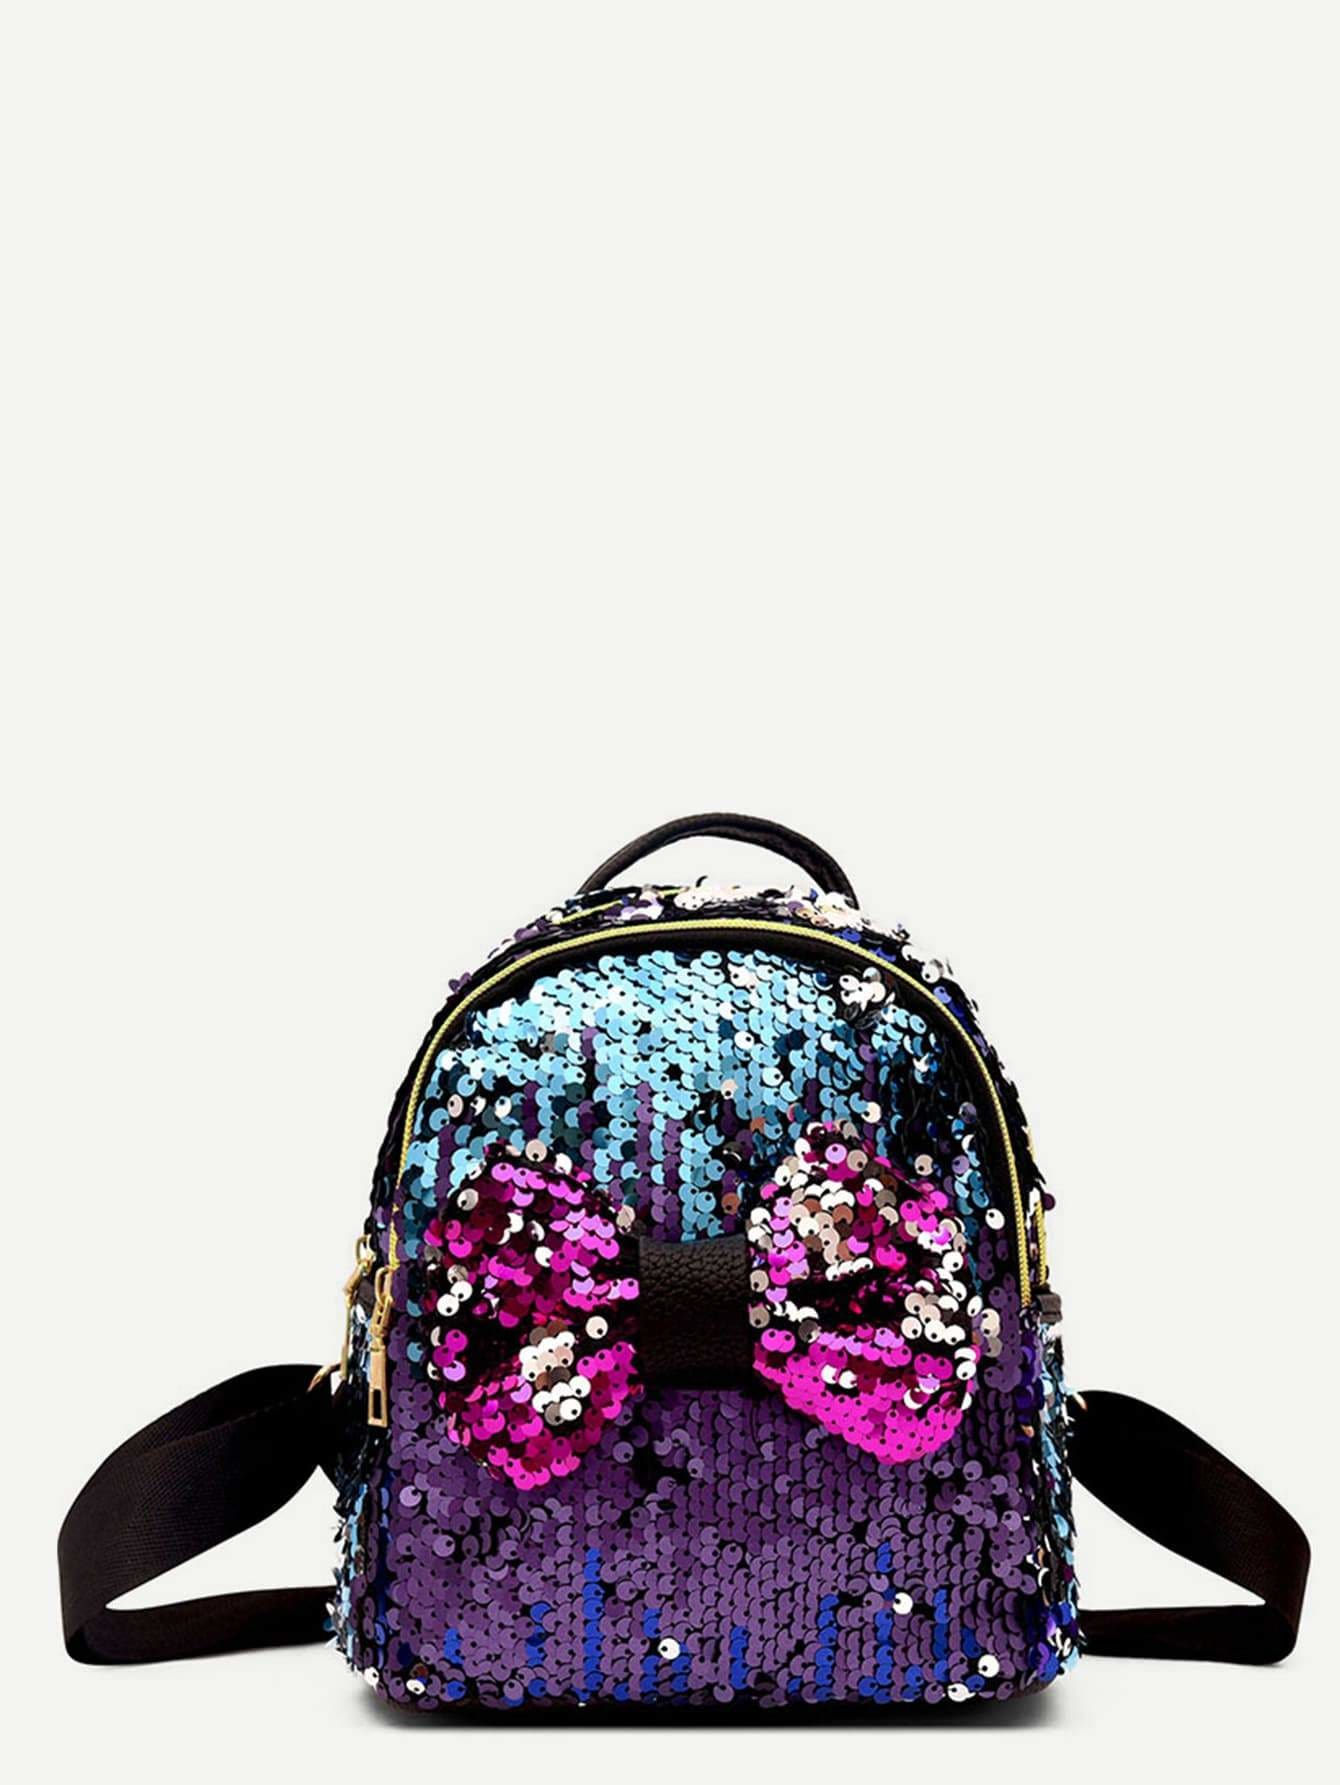 Bow Sequins Decor Festival Backpack - Womens Bag